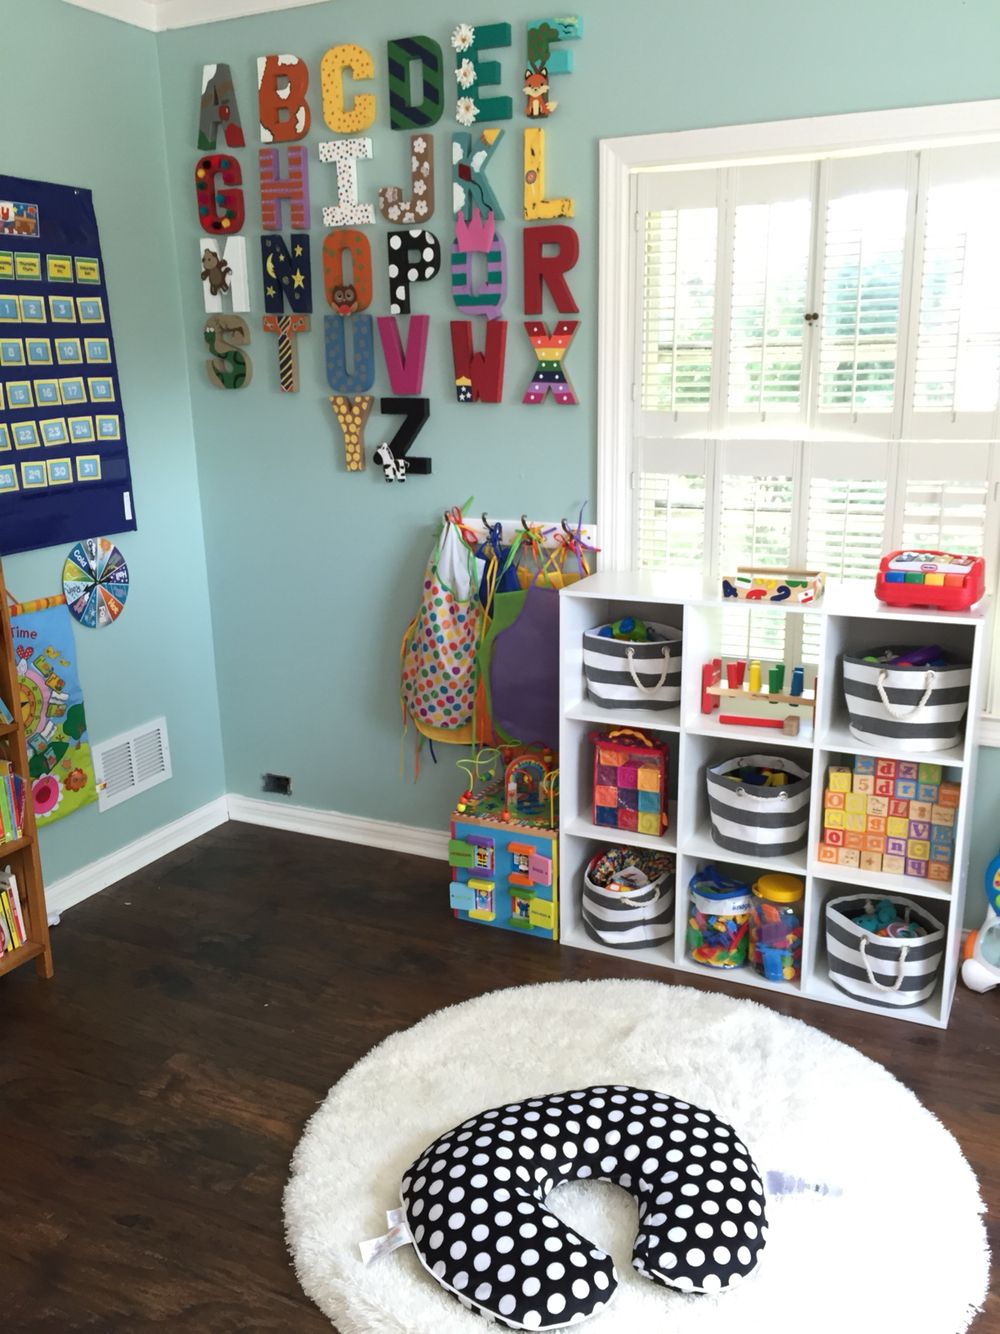 Home Daycare Ideas For Decorating Part - 23: In Home Daycare More